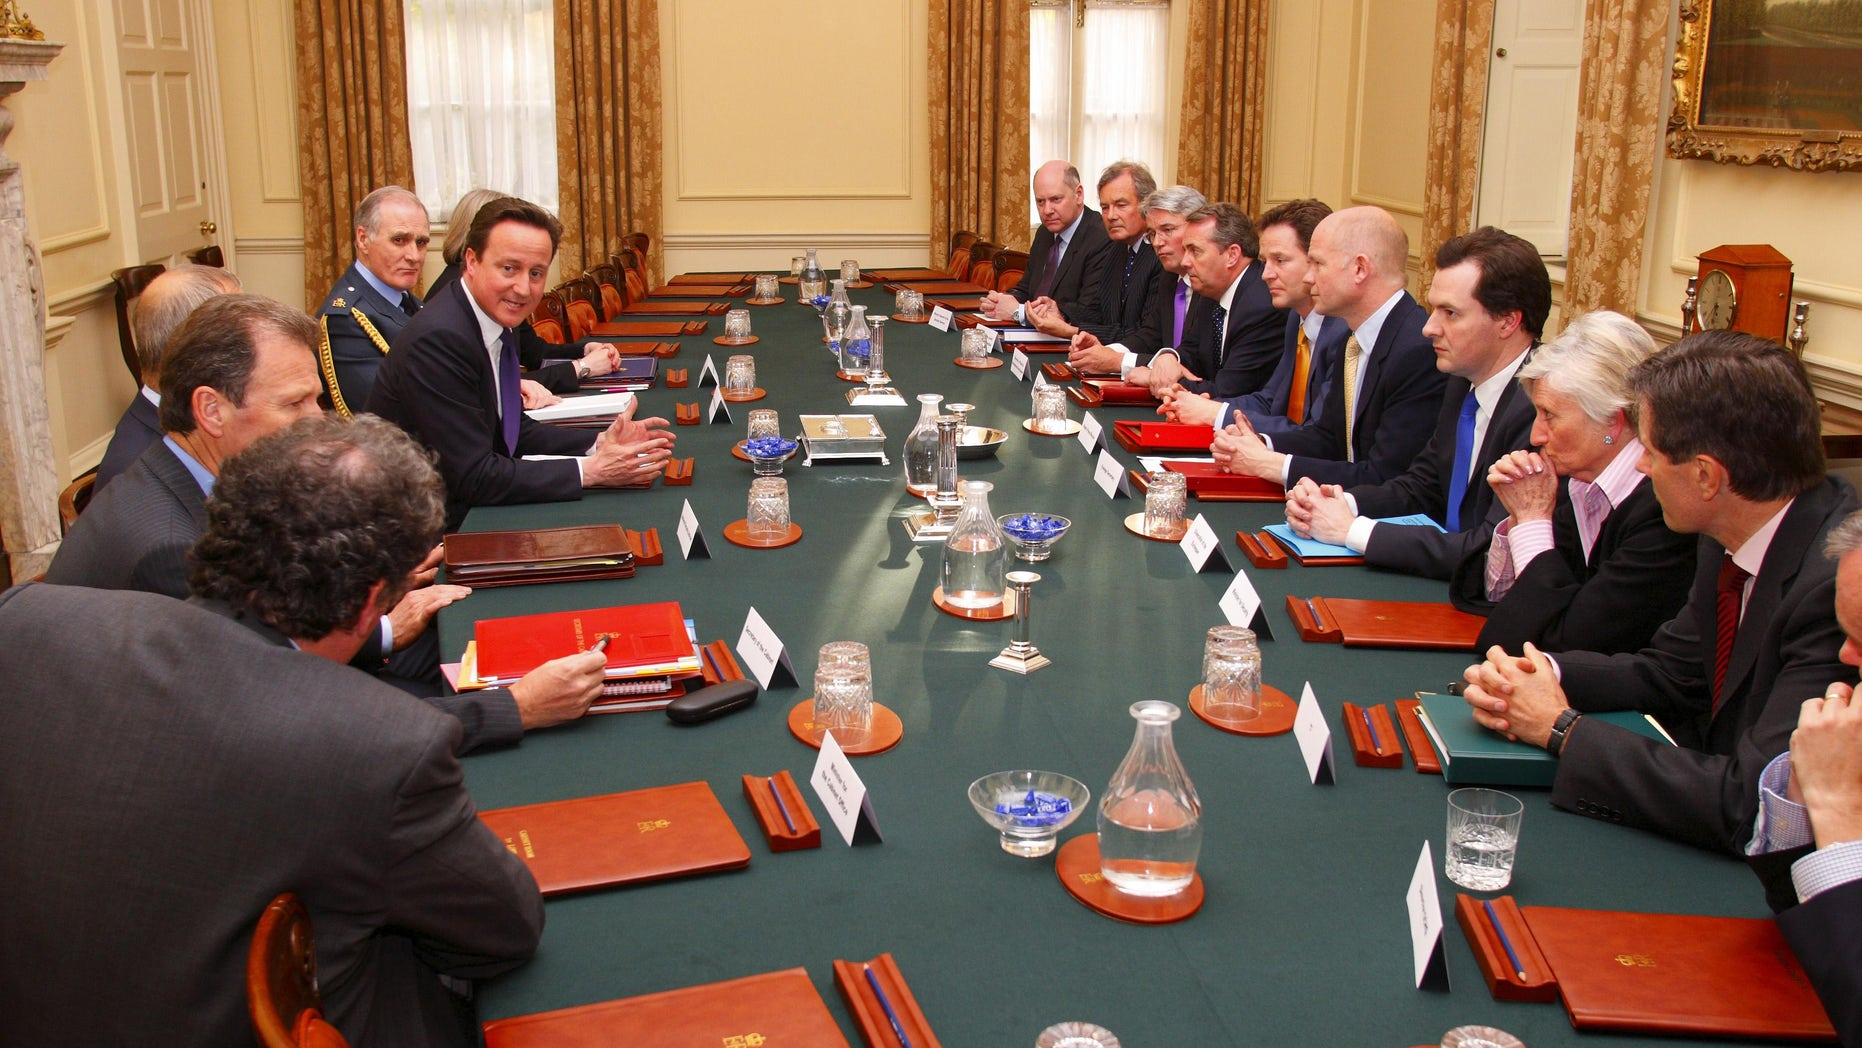 Britain's Prime Minister David Cameron, top, first left, chairs the first meeting of the National Security Council in the Cabinet Room at No.10 Downing Street. in central London, Wednesday, May 12, 2010. Others in attendance included Chief of the Defence Staff Sir Jock Stirrup, top left, Deputy Prime Minister Nick Clegg, fifth right, Foreign Secretary William Hague, sixth right, Chancellor George Osborne, seventh right and Defence Secretary Dr Liam Fox, fourth right. (AP Photo/Chris Ison, Pool)